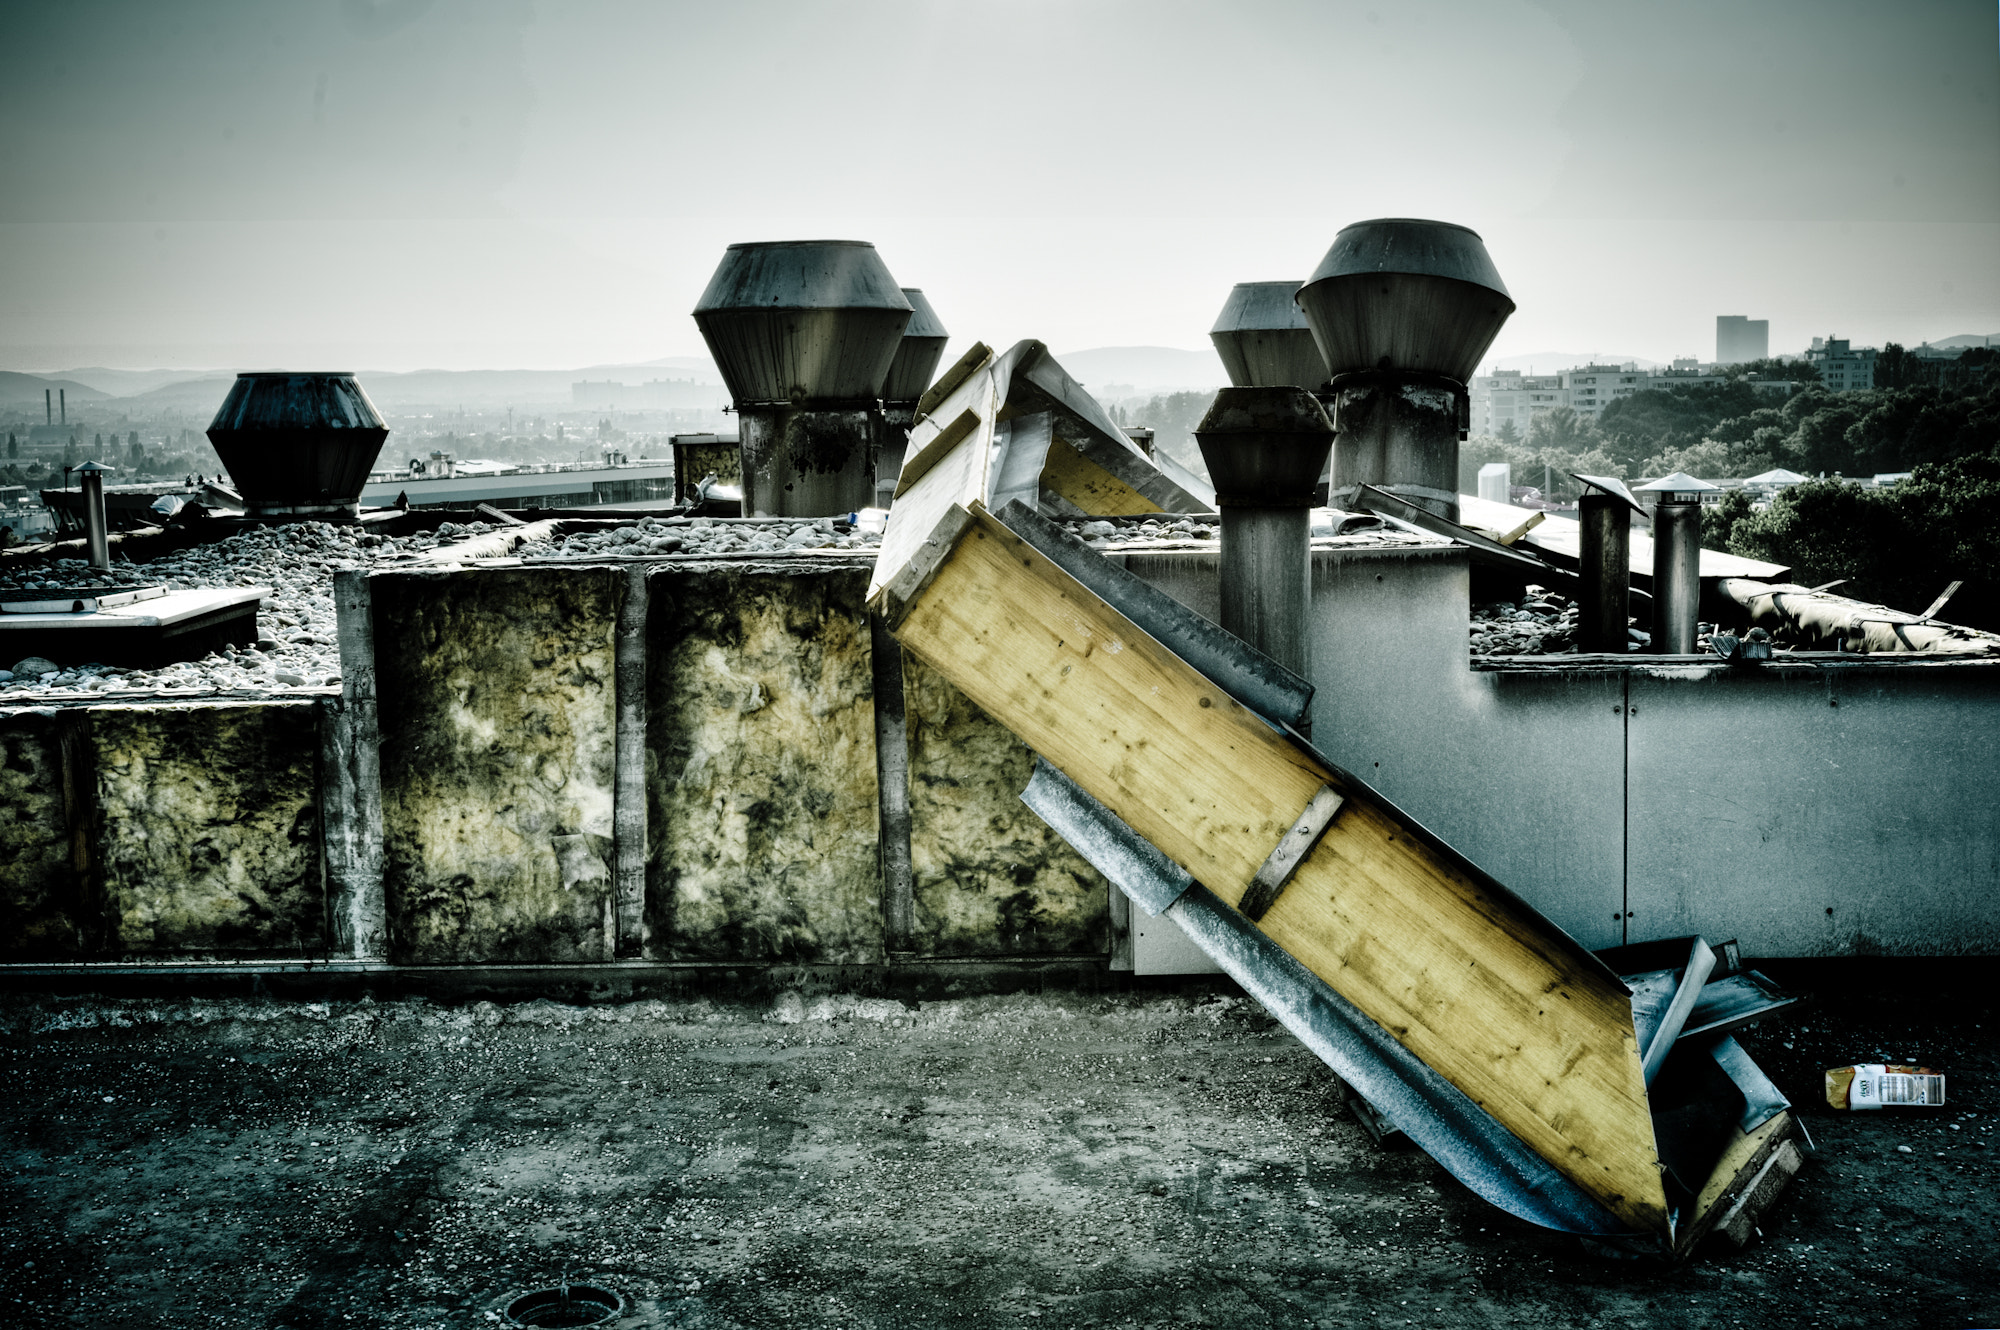 Photograph up on the roof by Thomas Luxus Strini on 500px